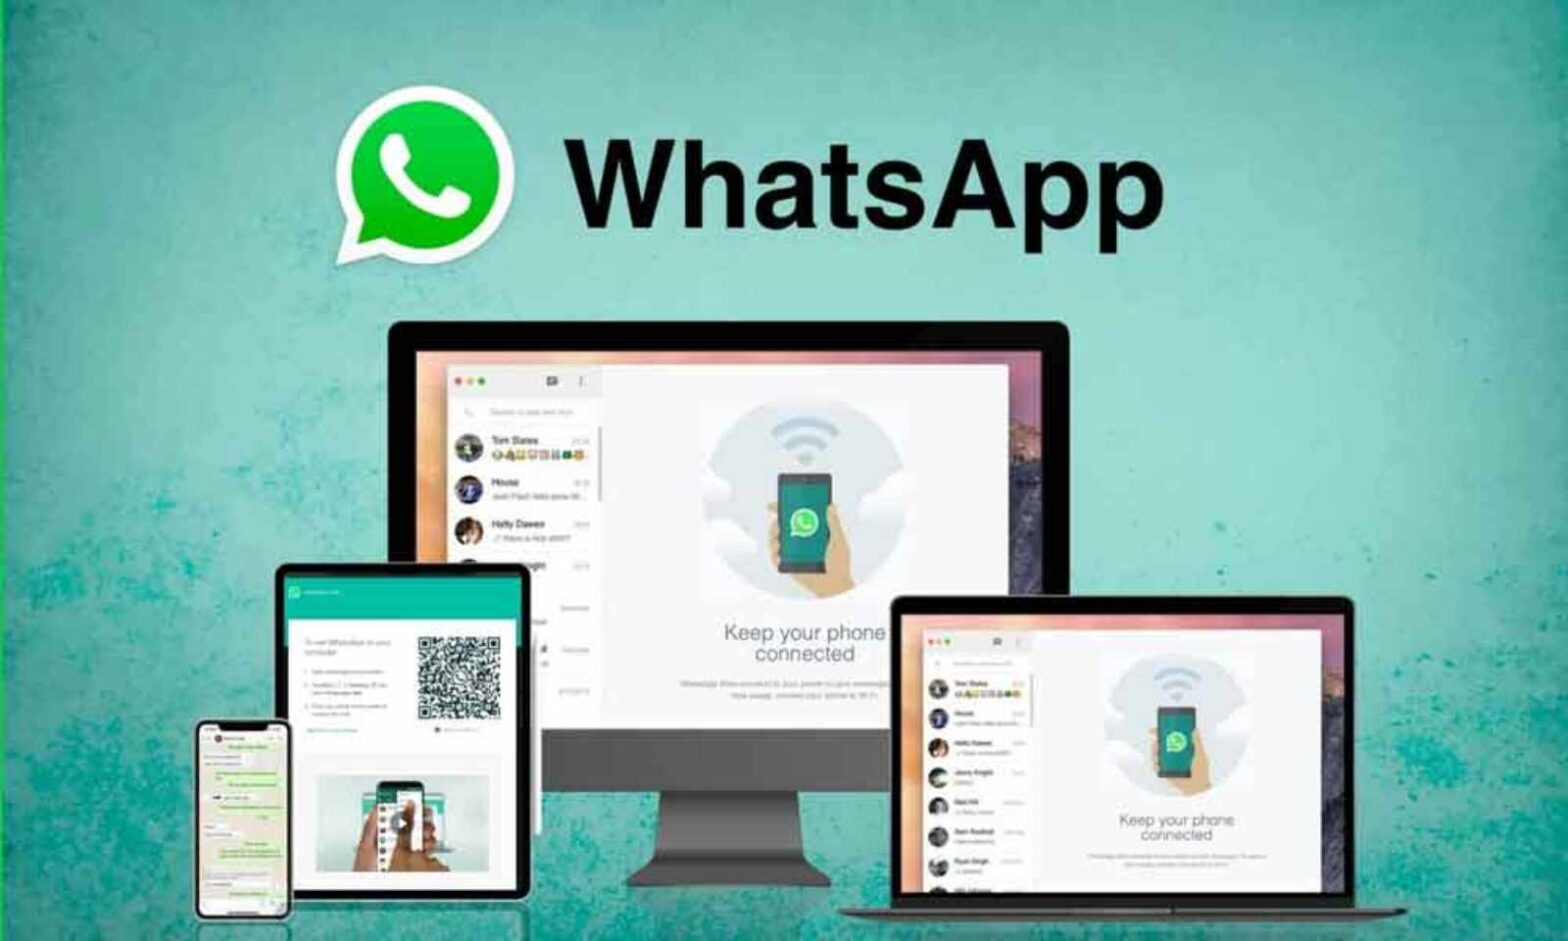 WhatsApp starts rolling out end-to-end encryption for cloud backups for beta testers